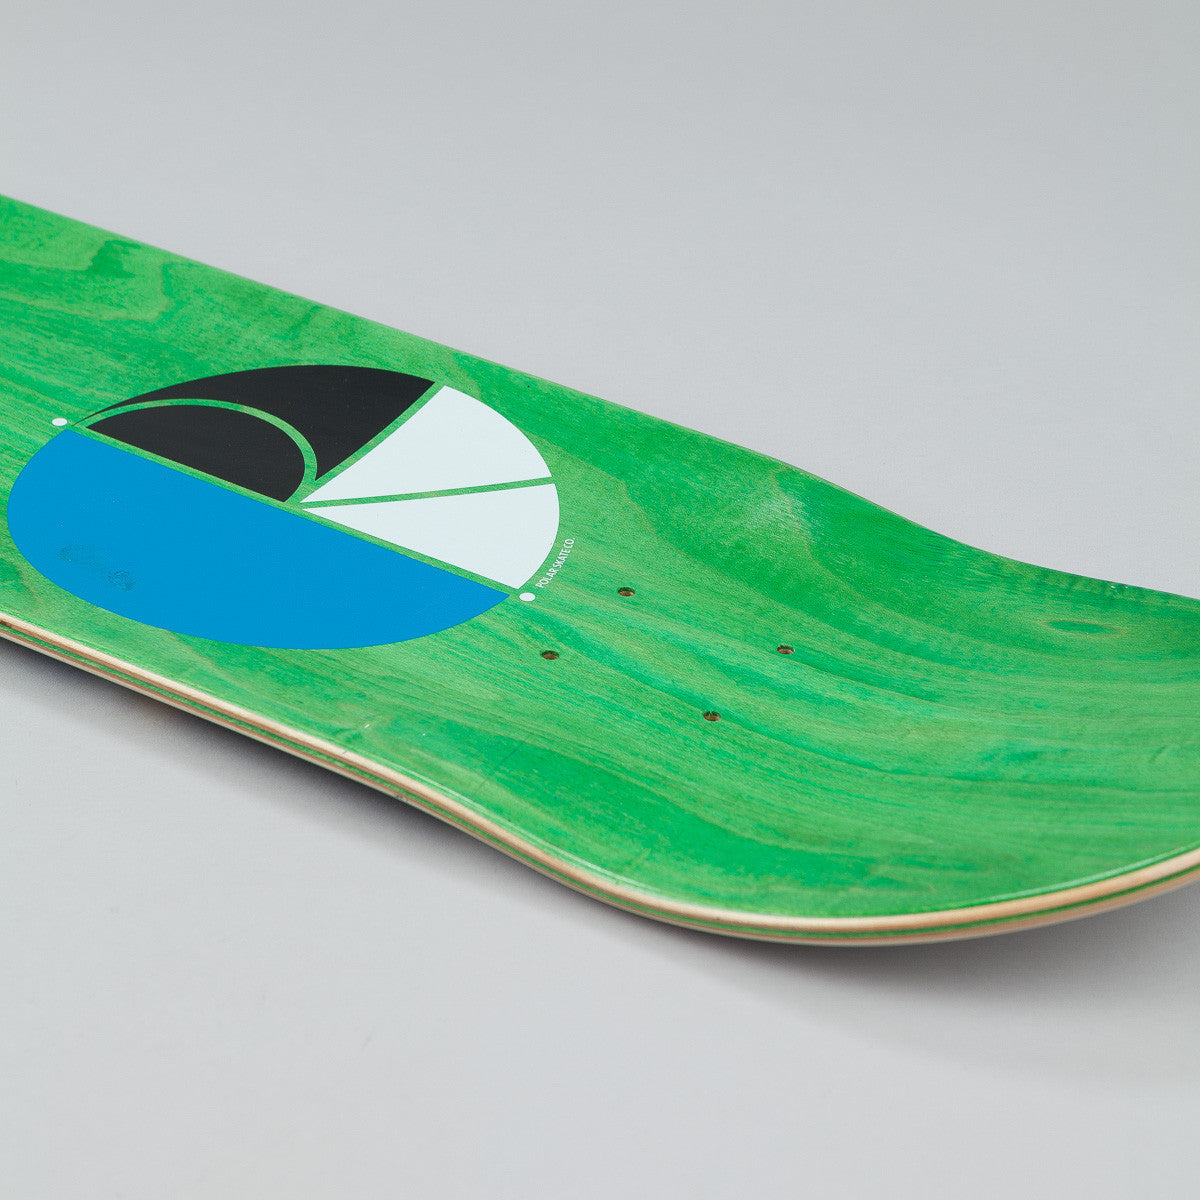 "Polar PA Wallride Nollie Deck - 8.125"" White / Navy"